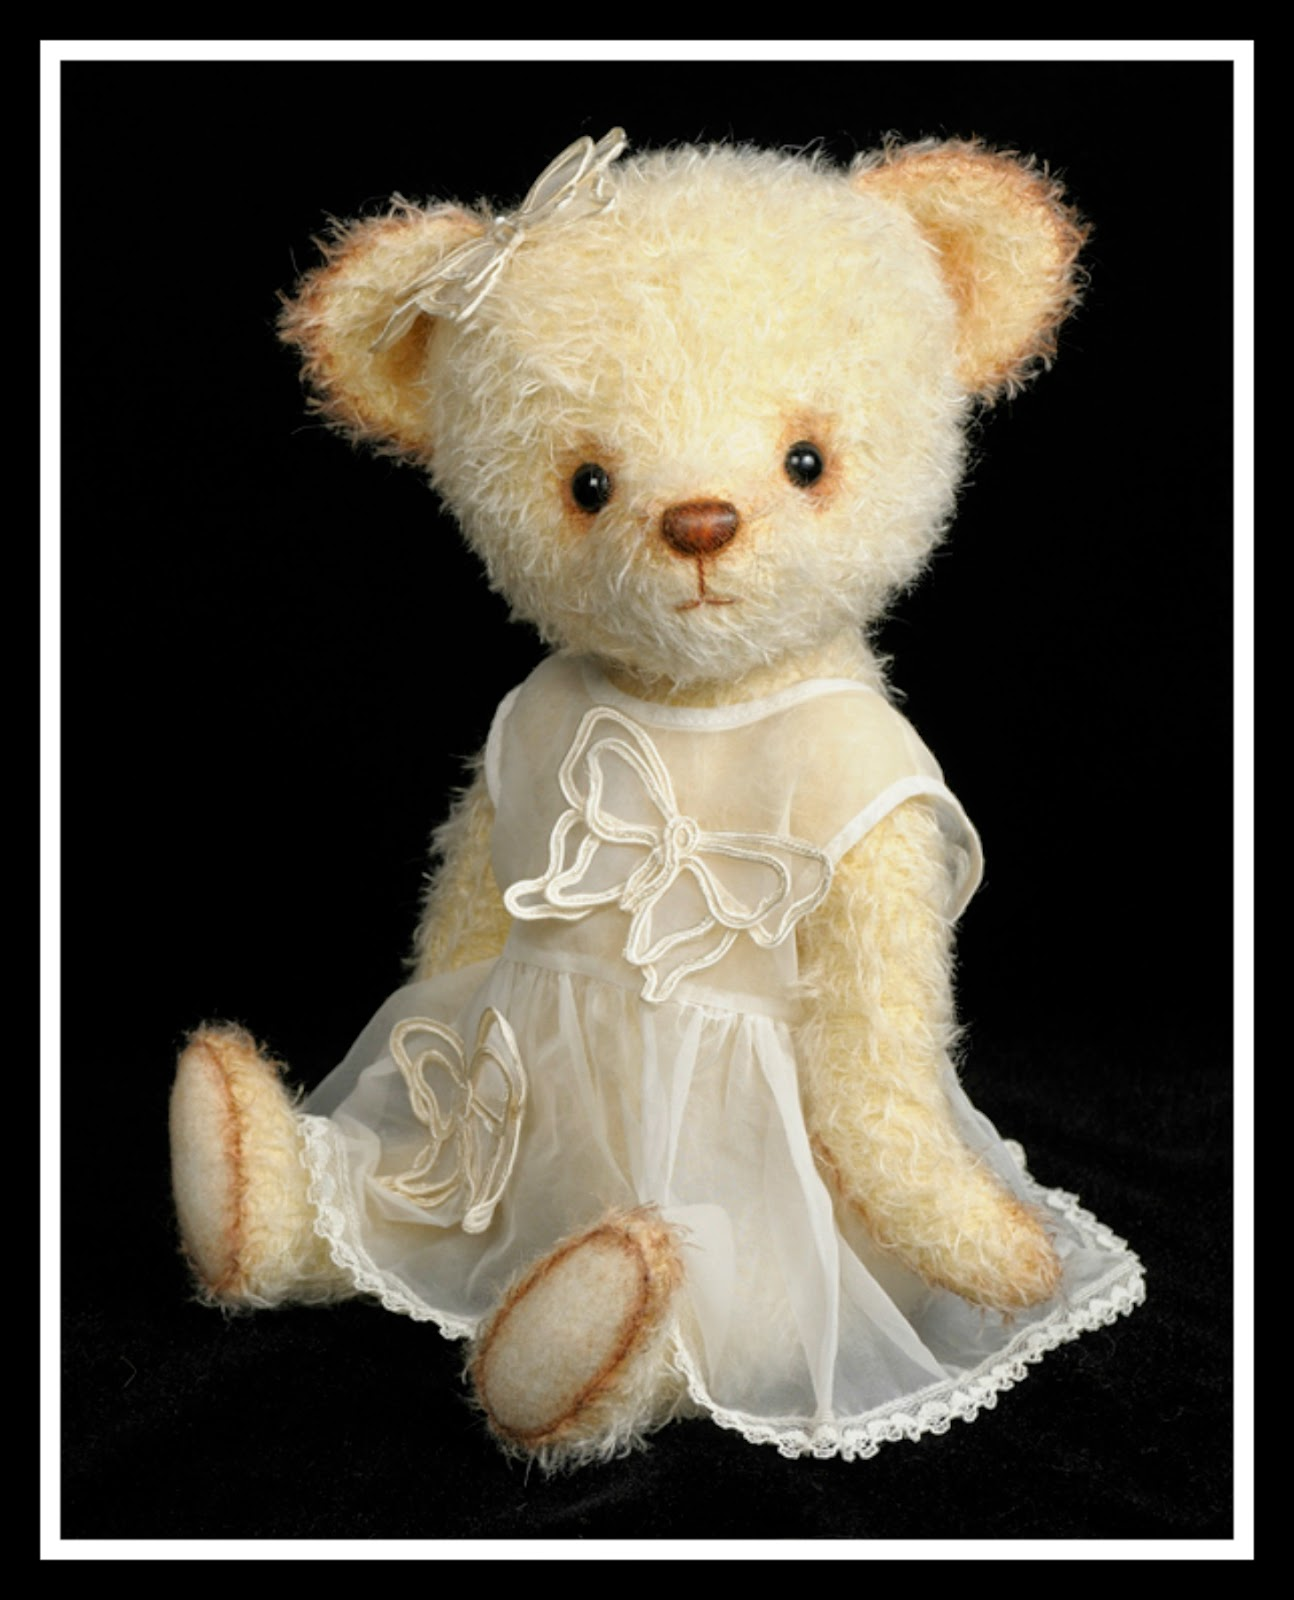 https://www.etsy.com/listing/223655375/mohair-stuffed-teddy-bear-pdf-pattern?ref=shop_home_active_2